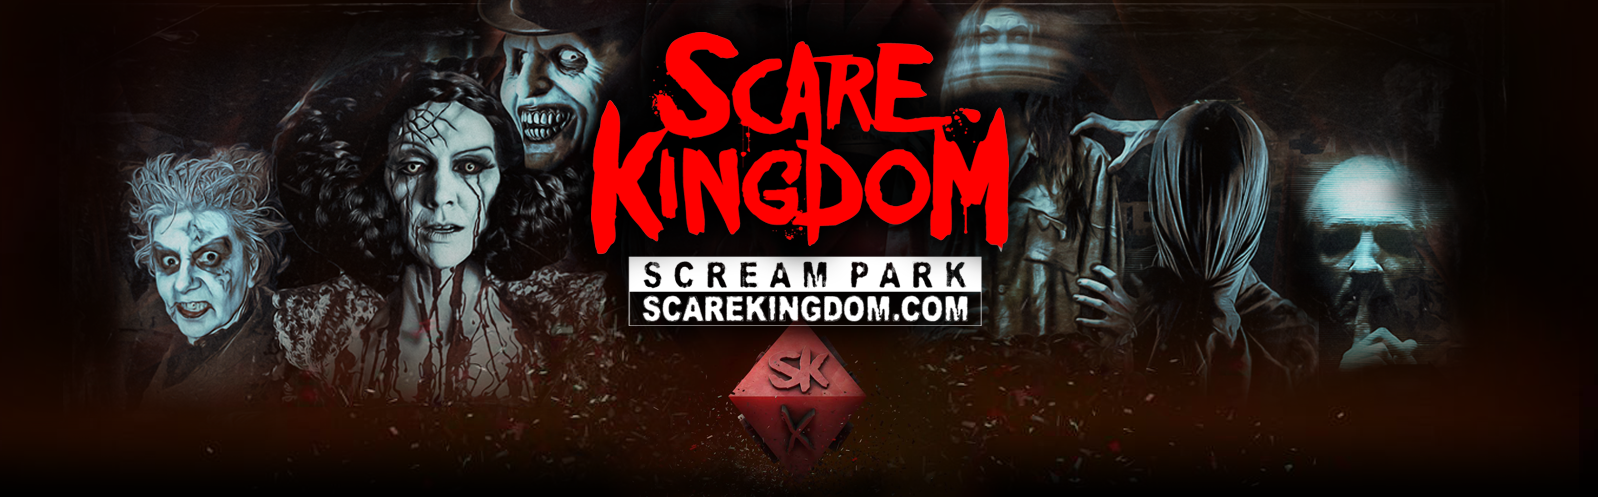 Photo of Scare Kingdom Scream Park Title